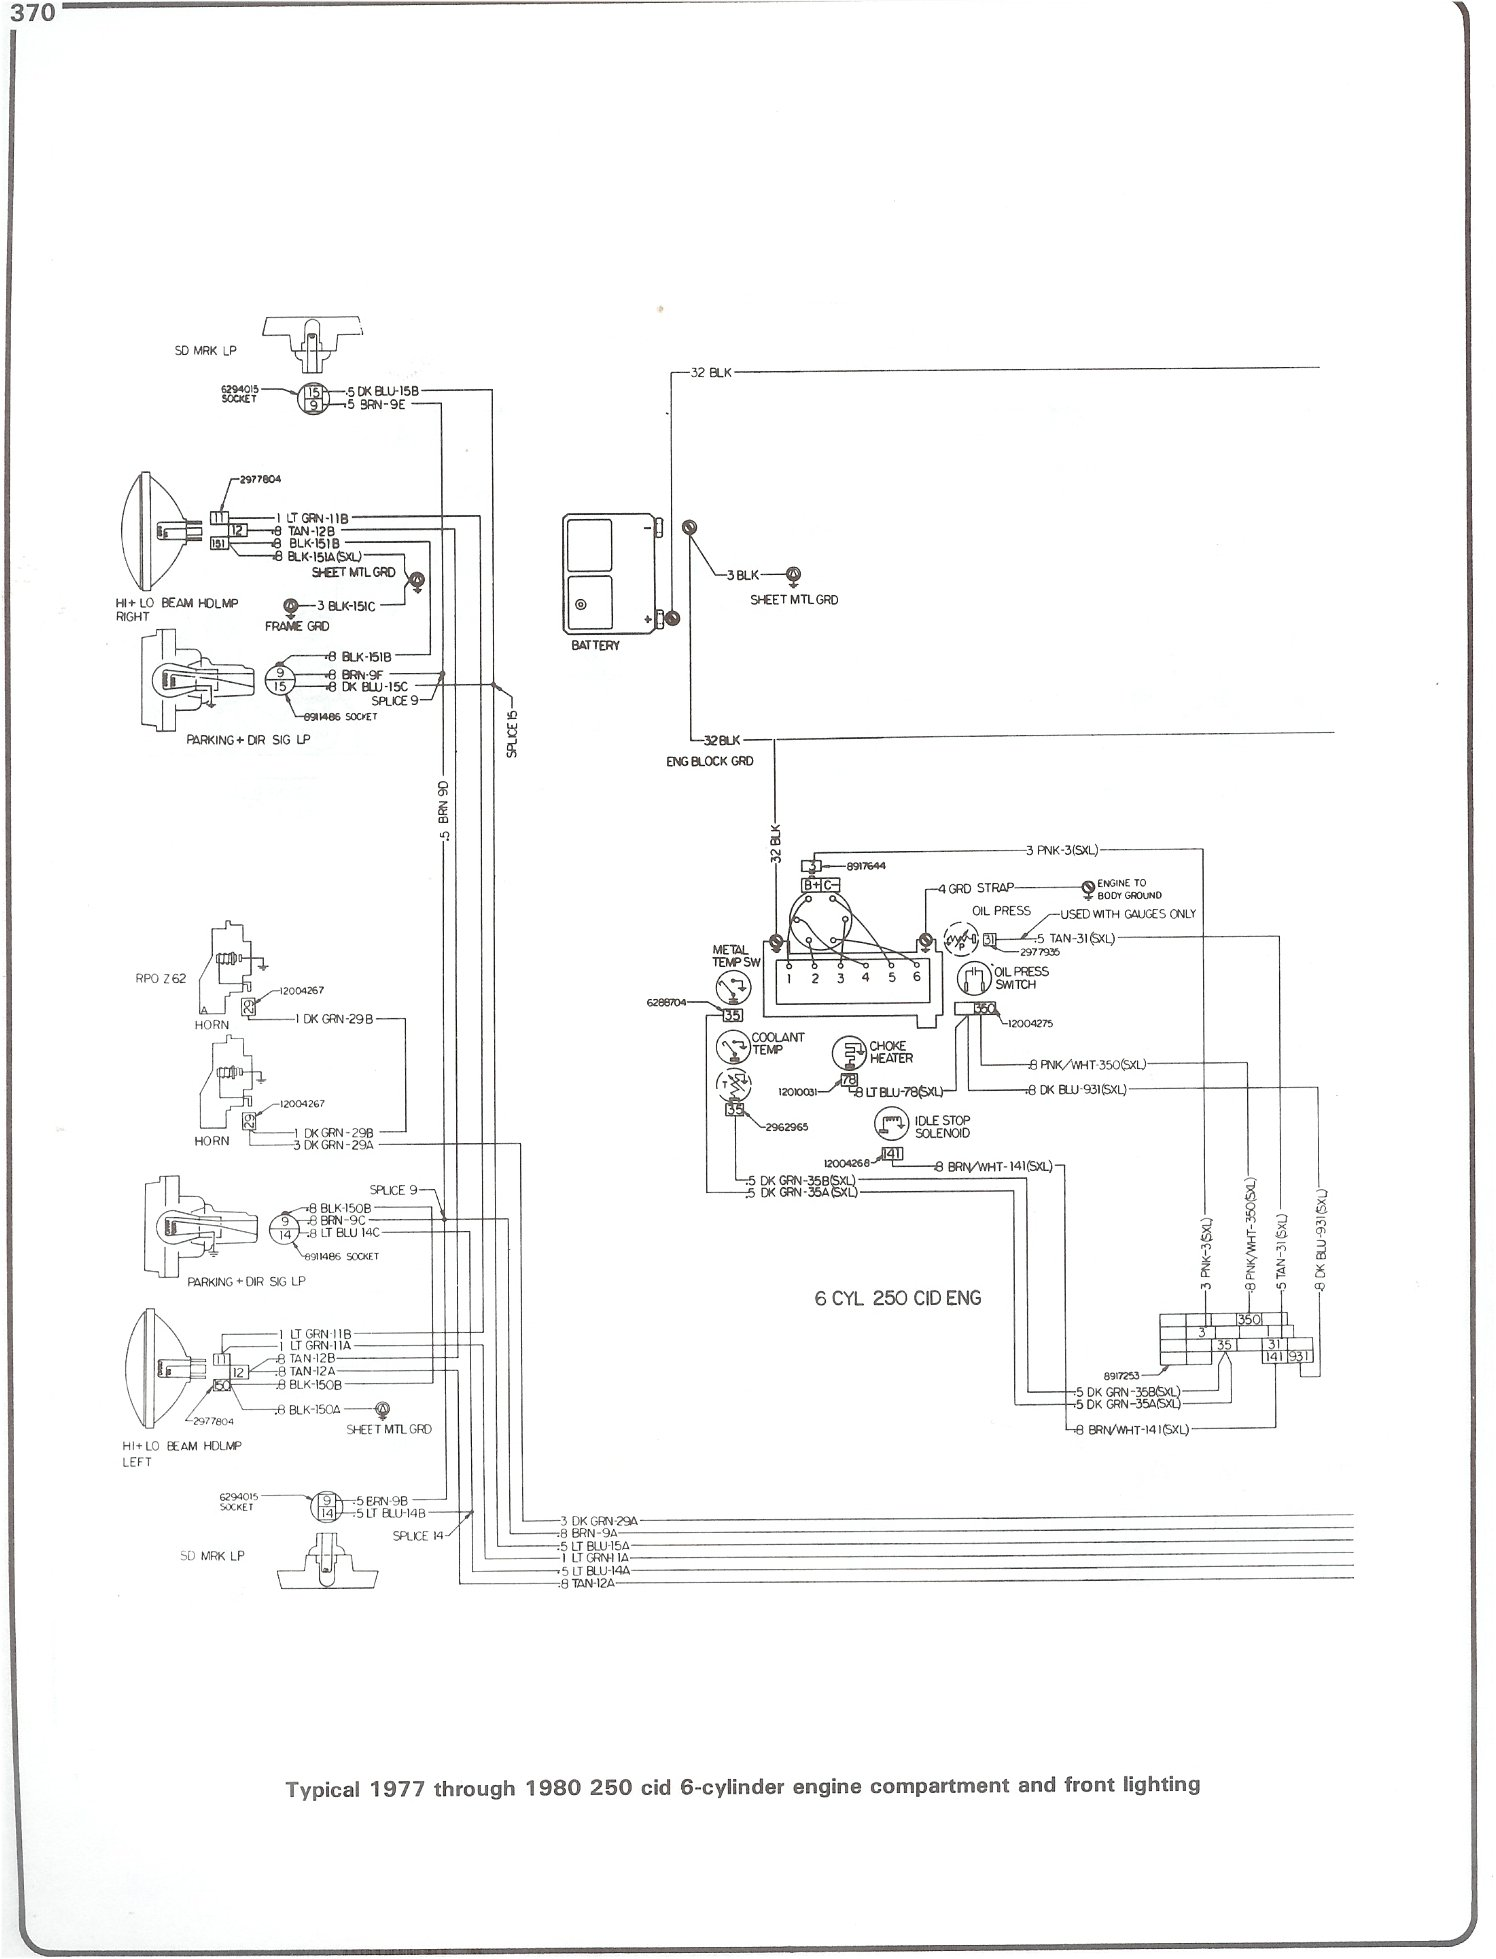 1977 Corvette Starter Schematic Wiring Diagram 79 Chevy Cheyenne